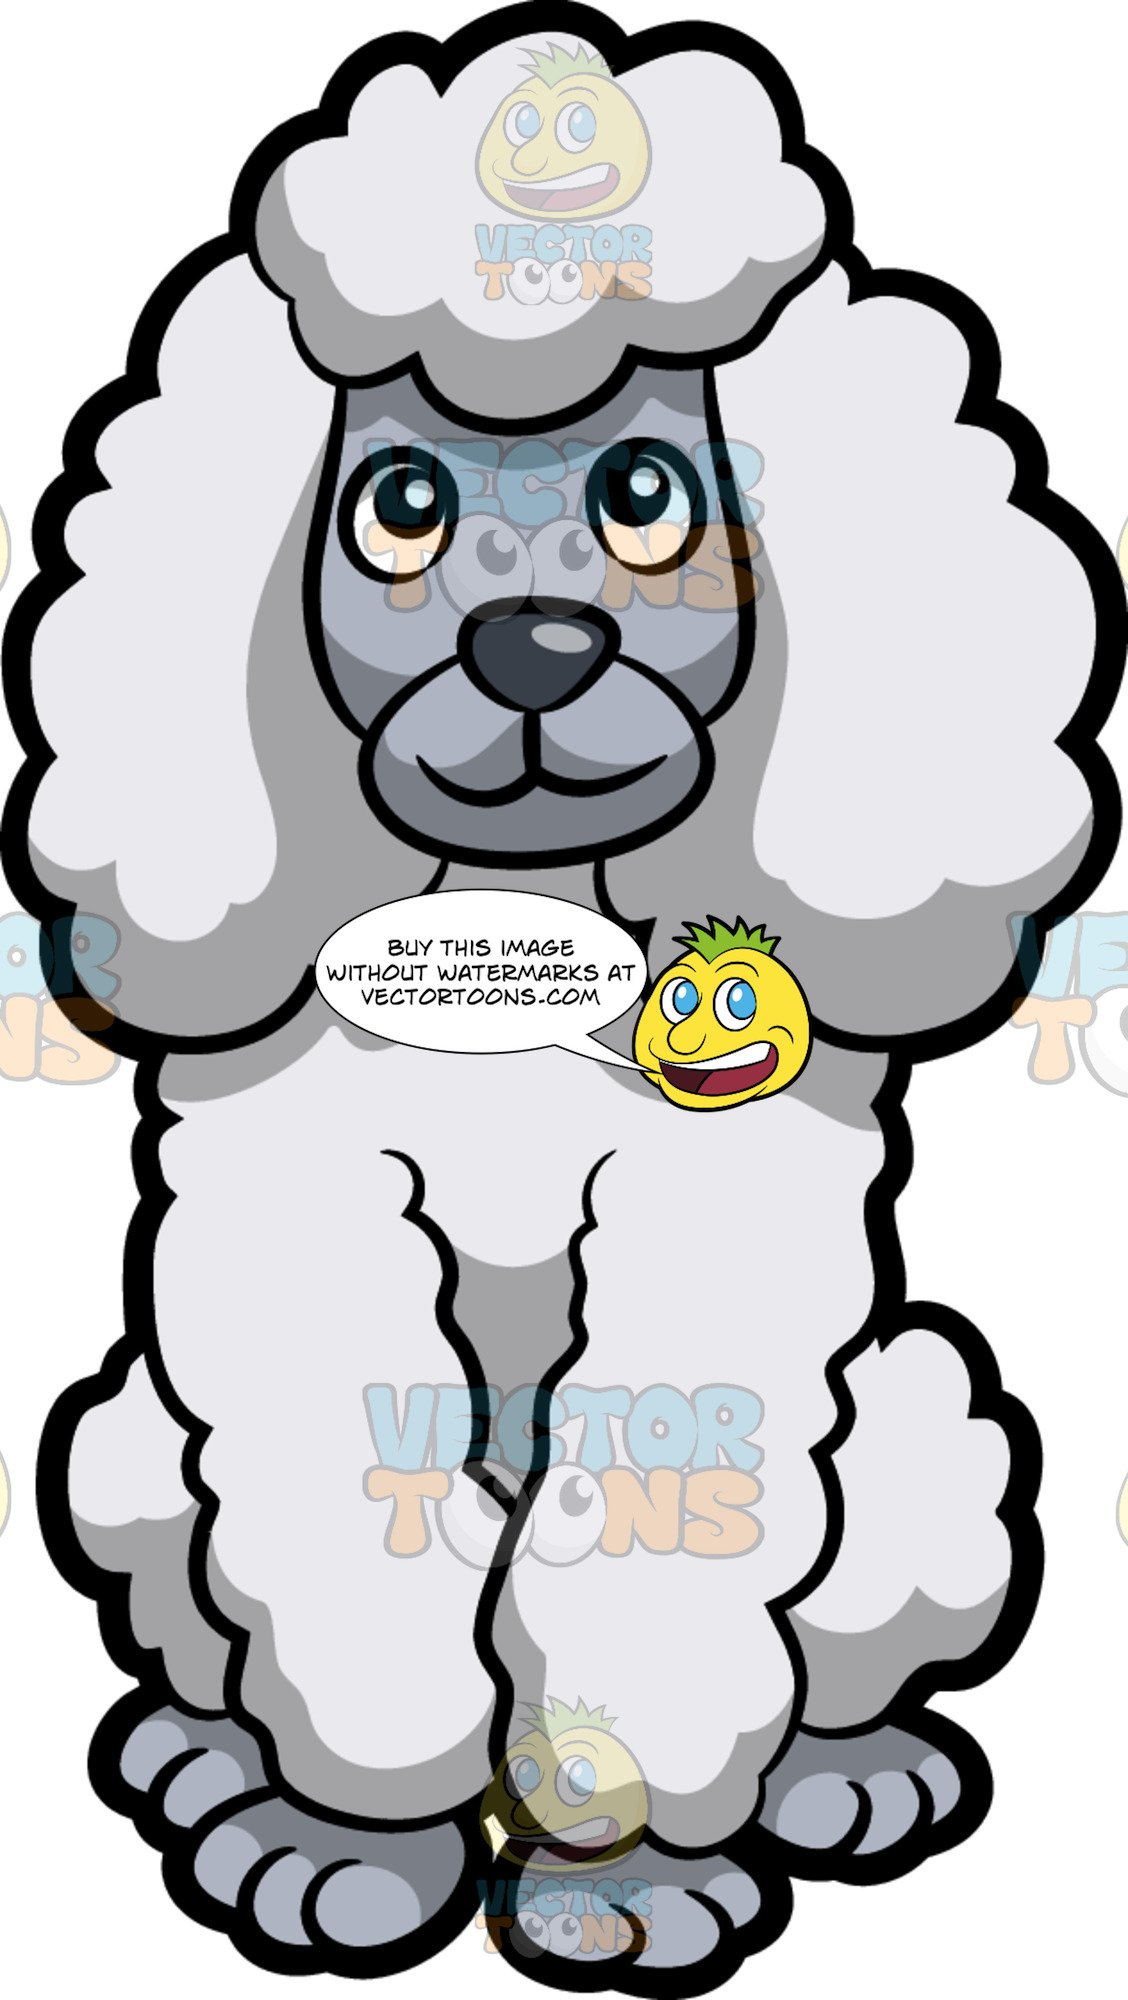 Cute poodle face clipart black and white picture freeuse A Cute White Standard Poodle Sitting Down picture freeuse